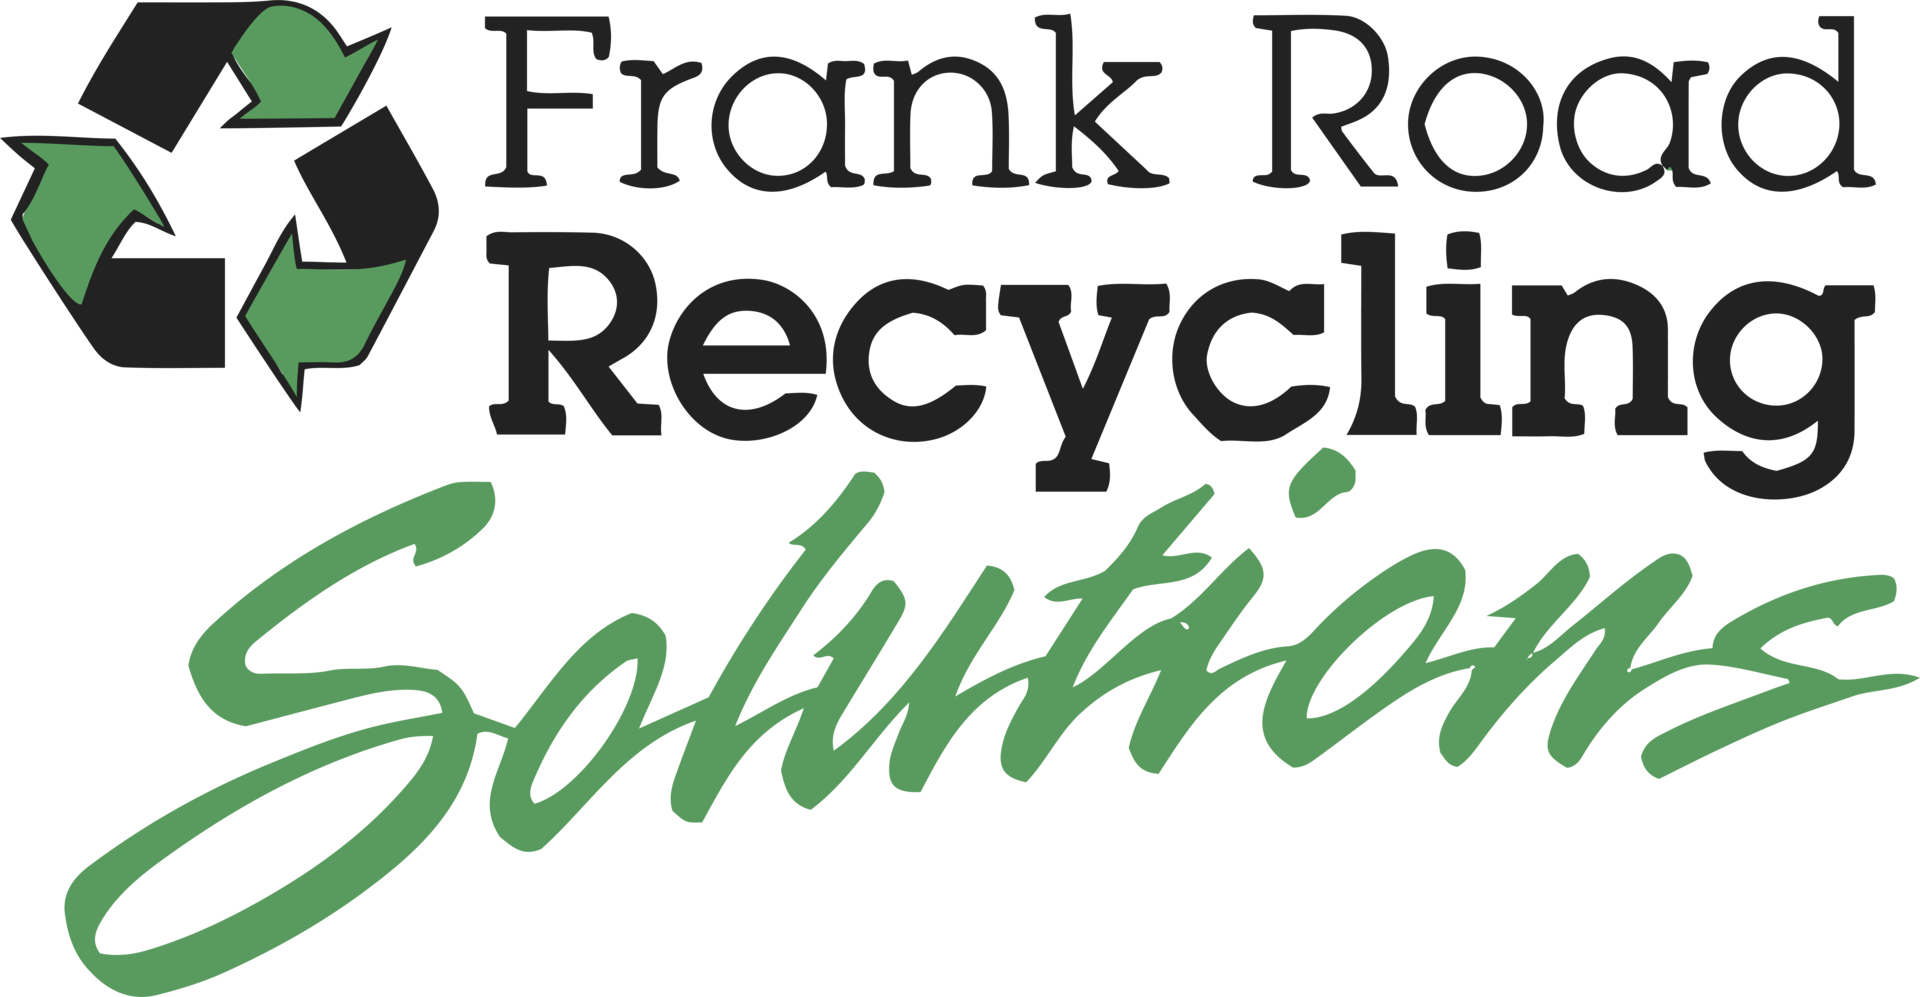 S1M - Frank Road Recycling Solutions